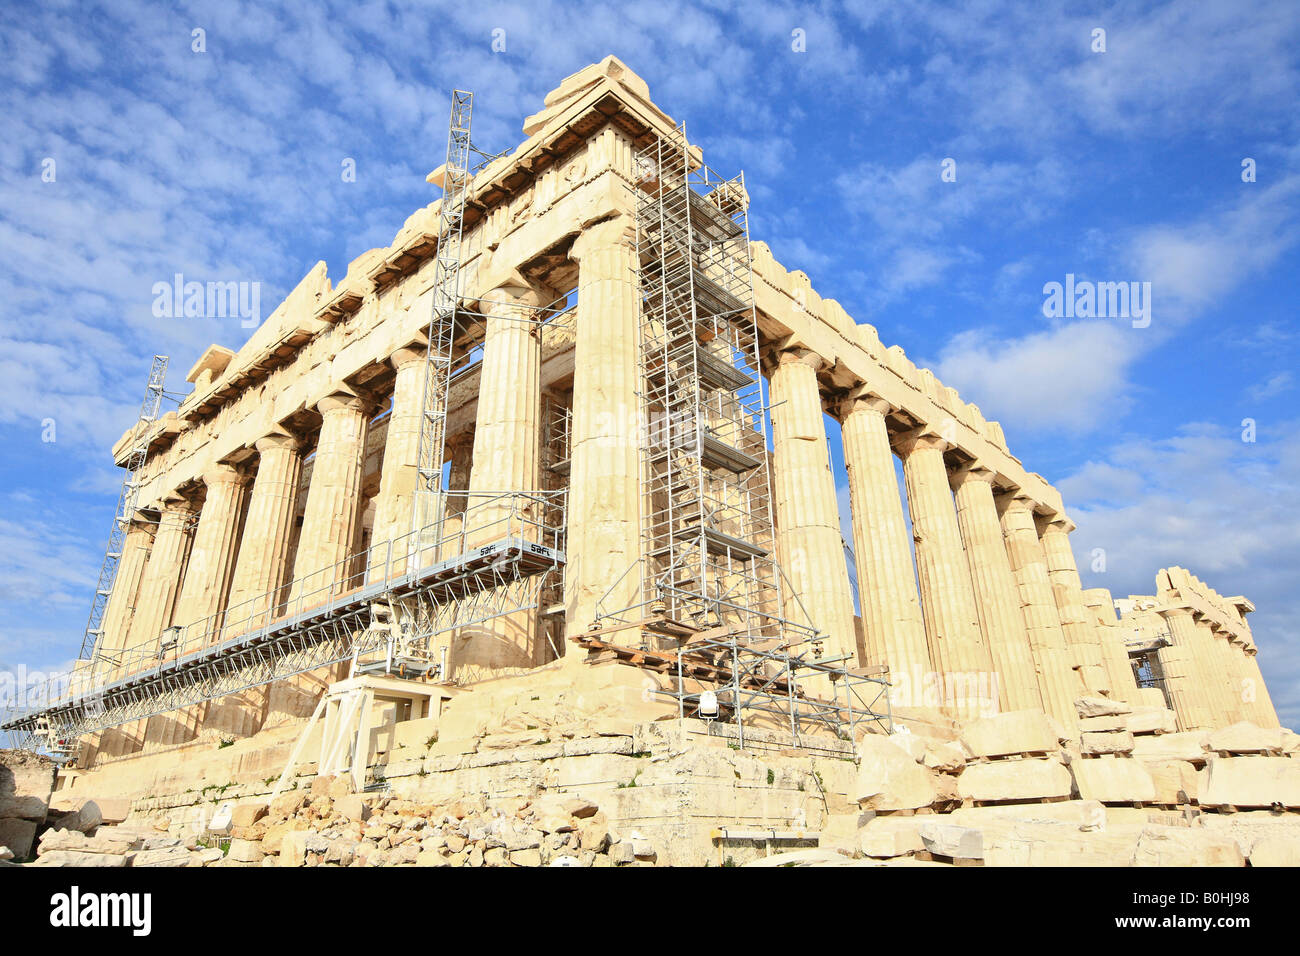 Acropolis, Athens, Greece - Stock Image